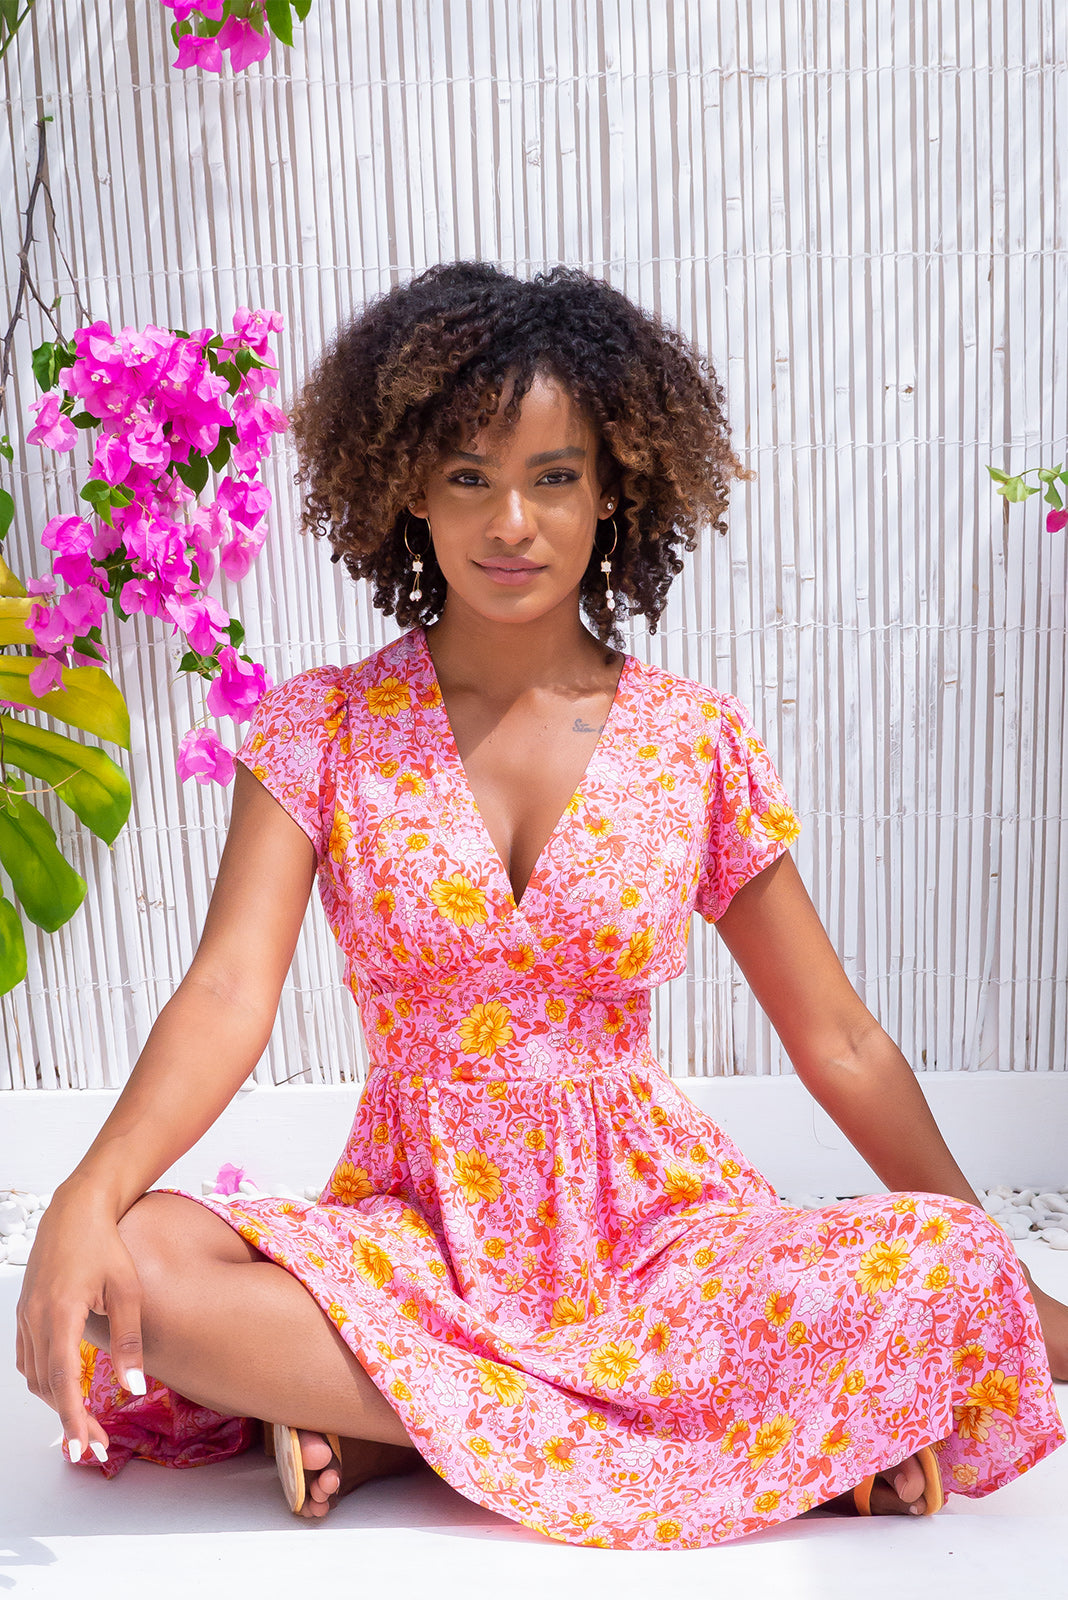 Lizzie Emma Pink Midi Dress inspired by retro frocks from the 1940s and 1950s features fitted basque waist with gathered bust, waist features elastic shirring at back, deep side pockets, bright pink base with orange and peach floral print in woven 100% rayon.